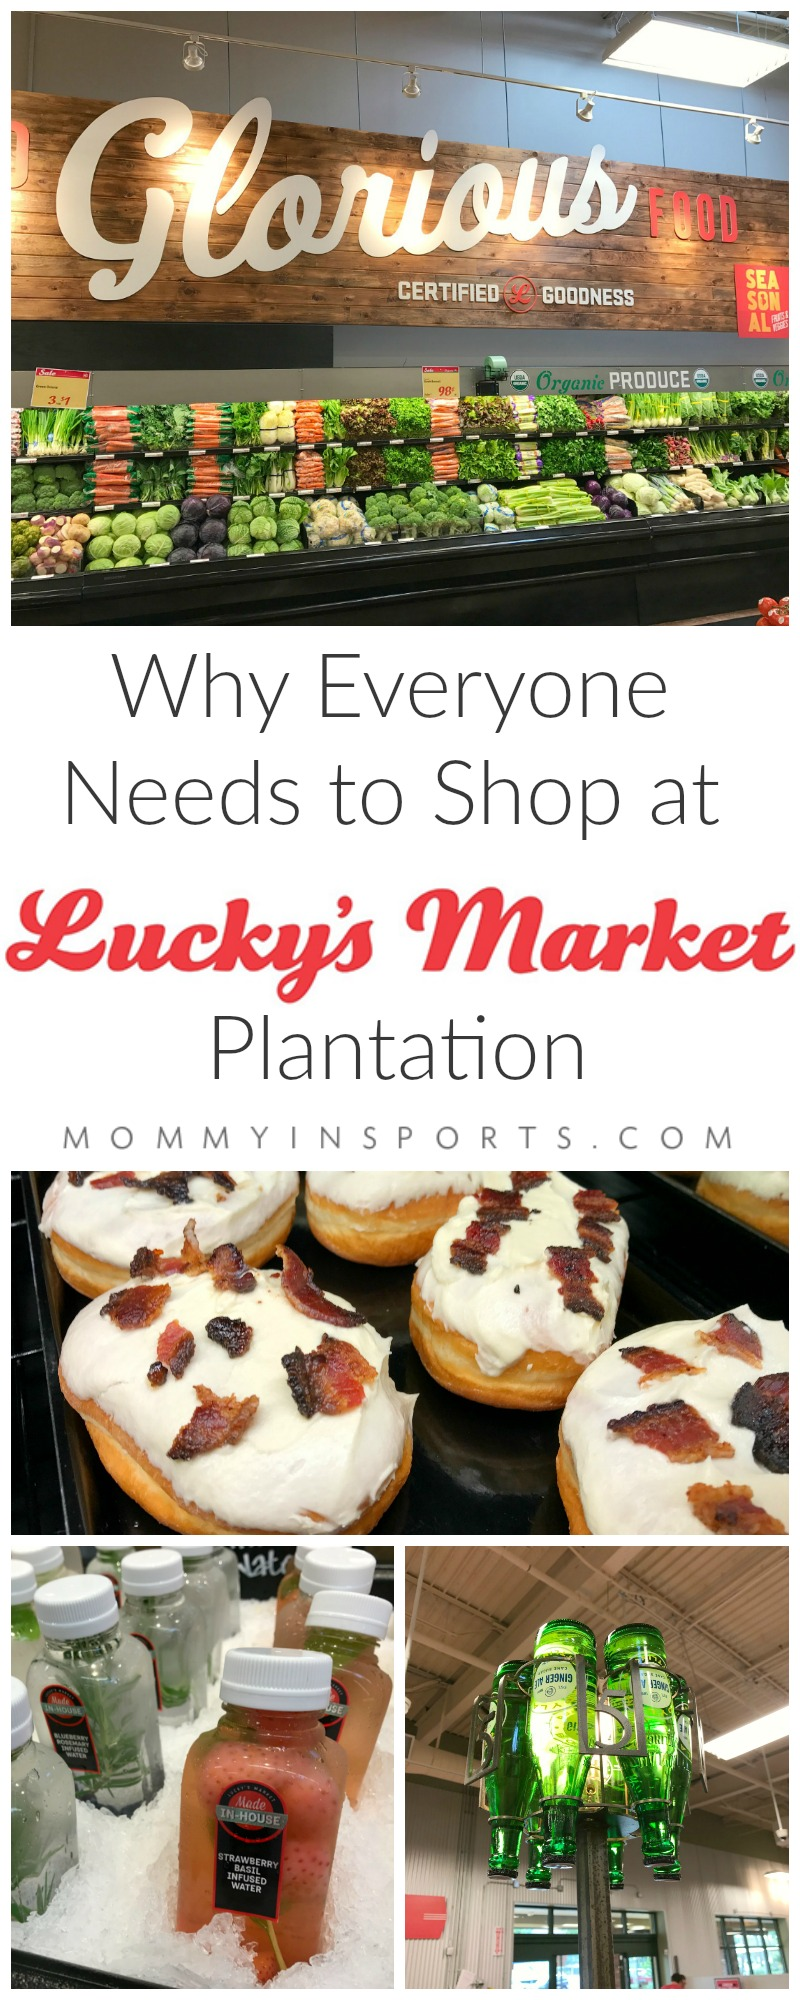 Looking for natural and organic food at affordable prices? Then check out Lucky's Market in Plantation, it's every foodie's dream!